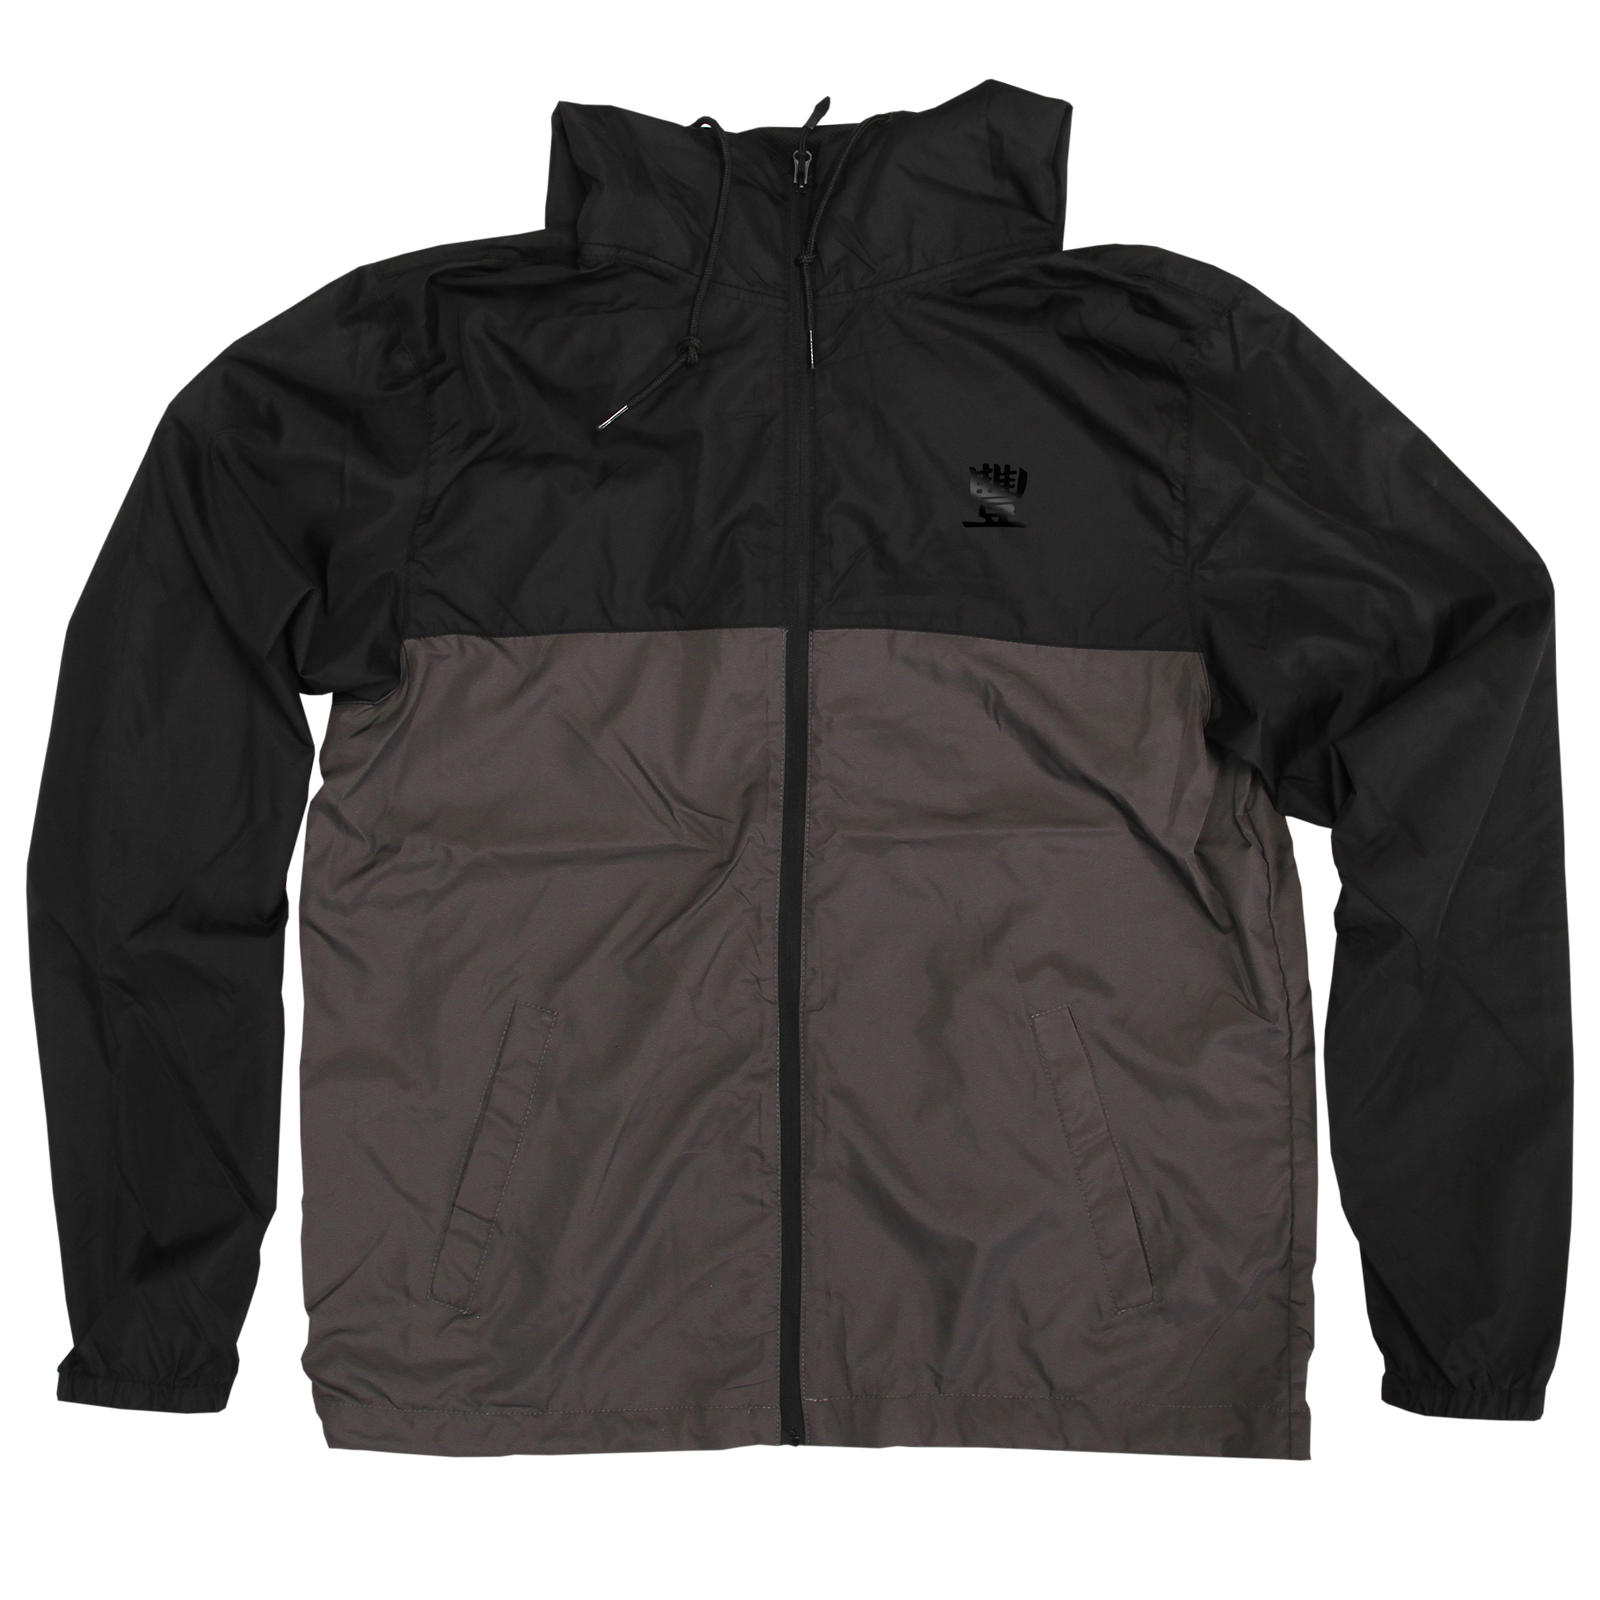 JMT Black Friday Limited Windbreaker